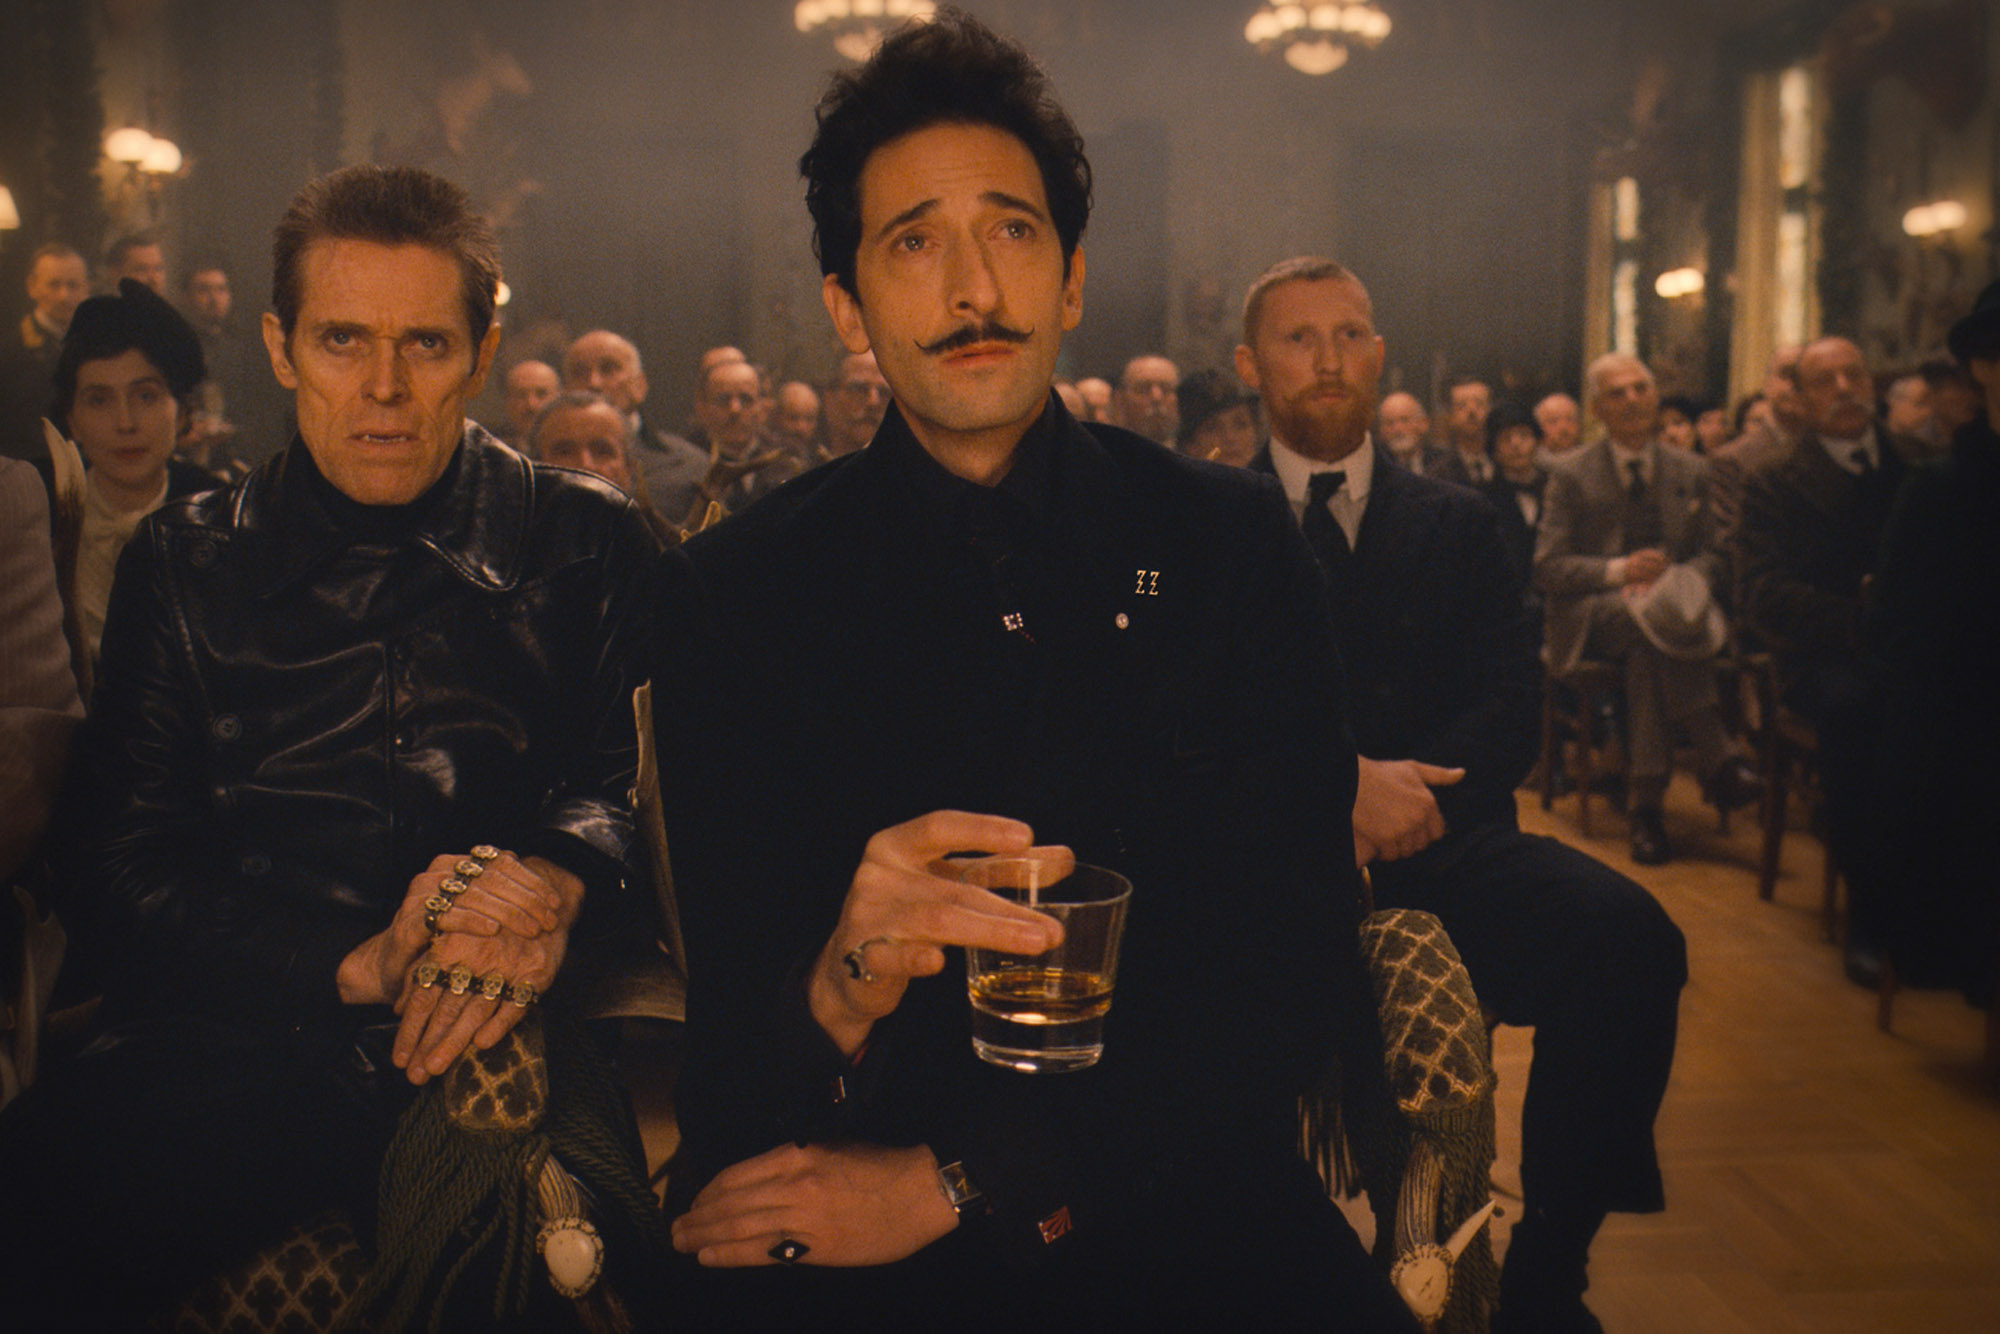 Repeat Anderson collaborators Willem Dafoe and Adrien Brody also appear in the film.